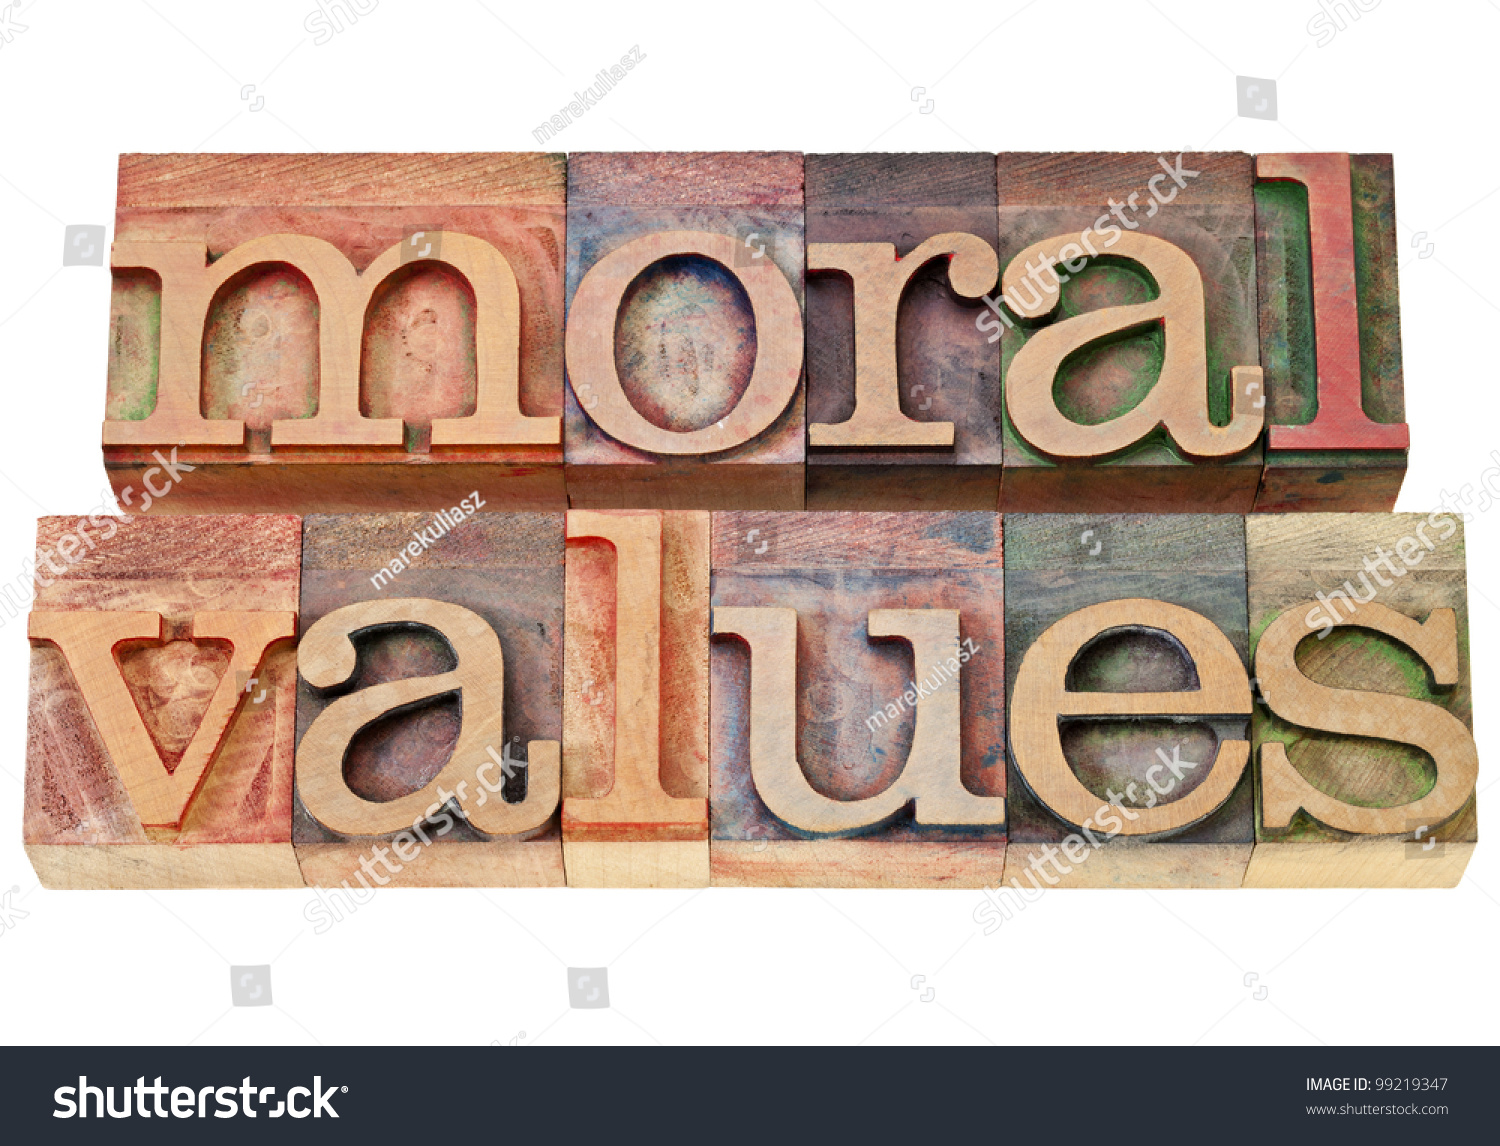 what are the moral values important in life  what are the moral values important in life